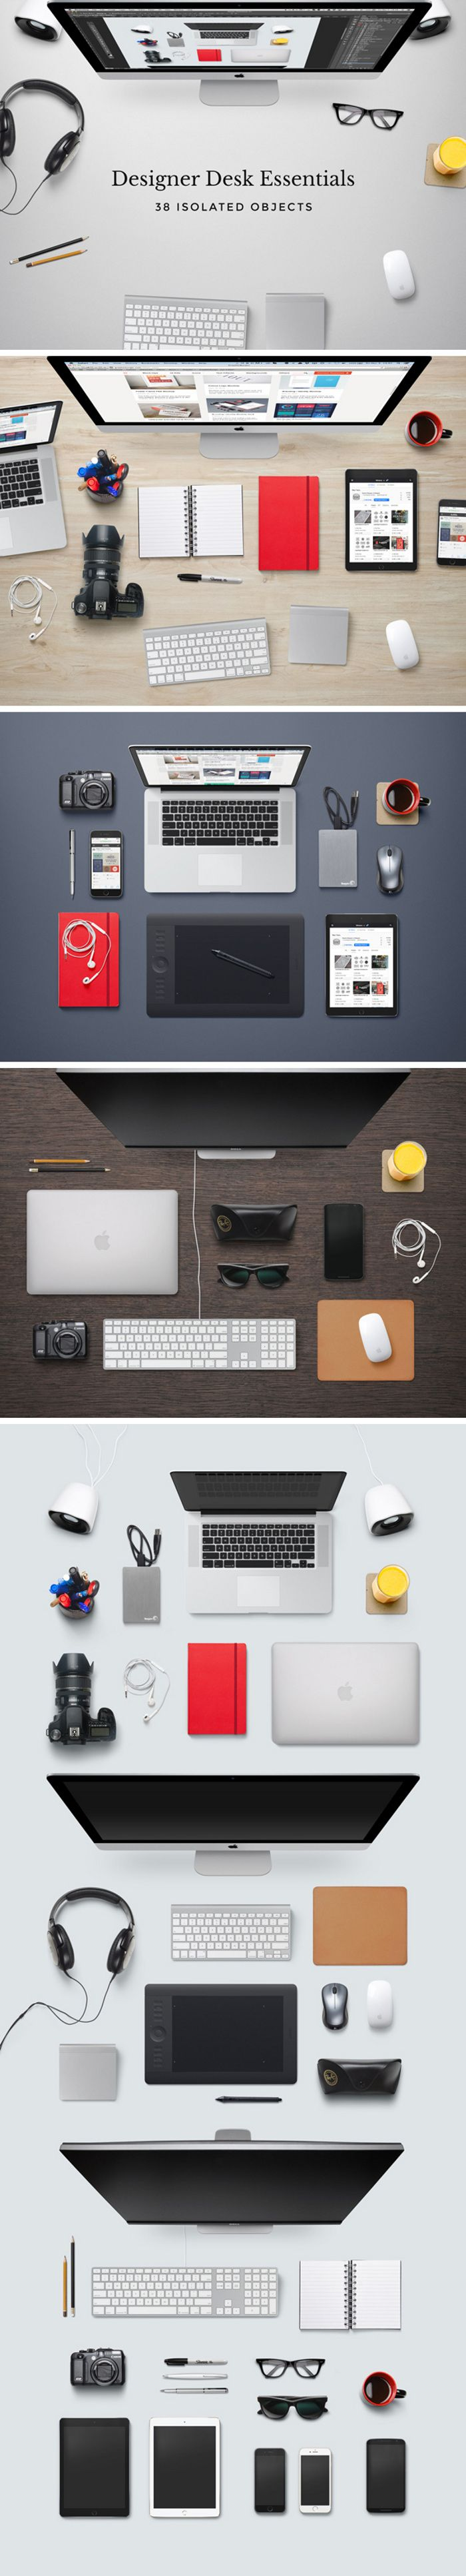 Free Designer Desk Essentials Mockup by GraphicBurger #mockup #heroimages